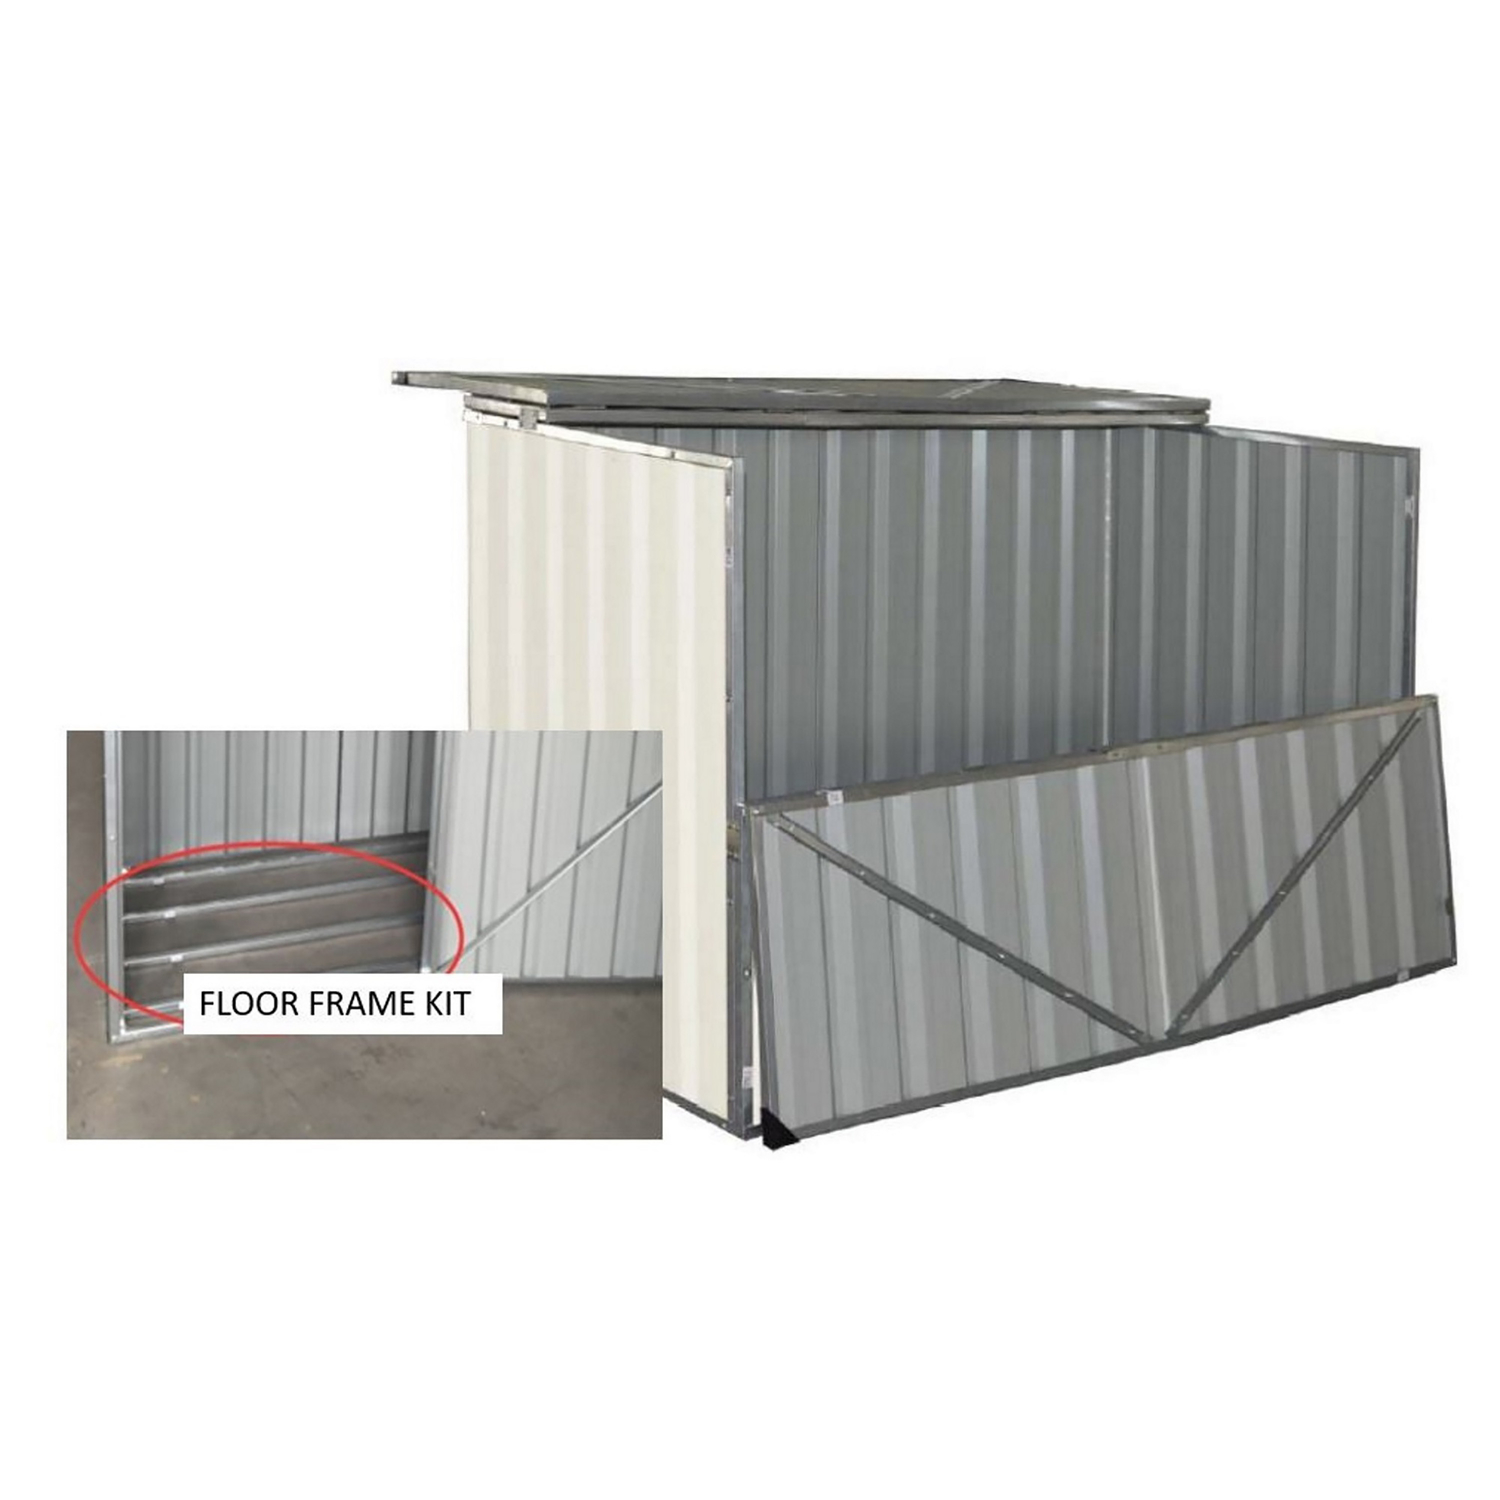 Build-Well  42 in. H x 50 in. W x 36 in. D Steel  Outdoor Storage Shed  Cream